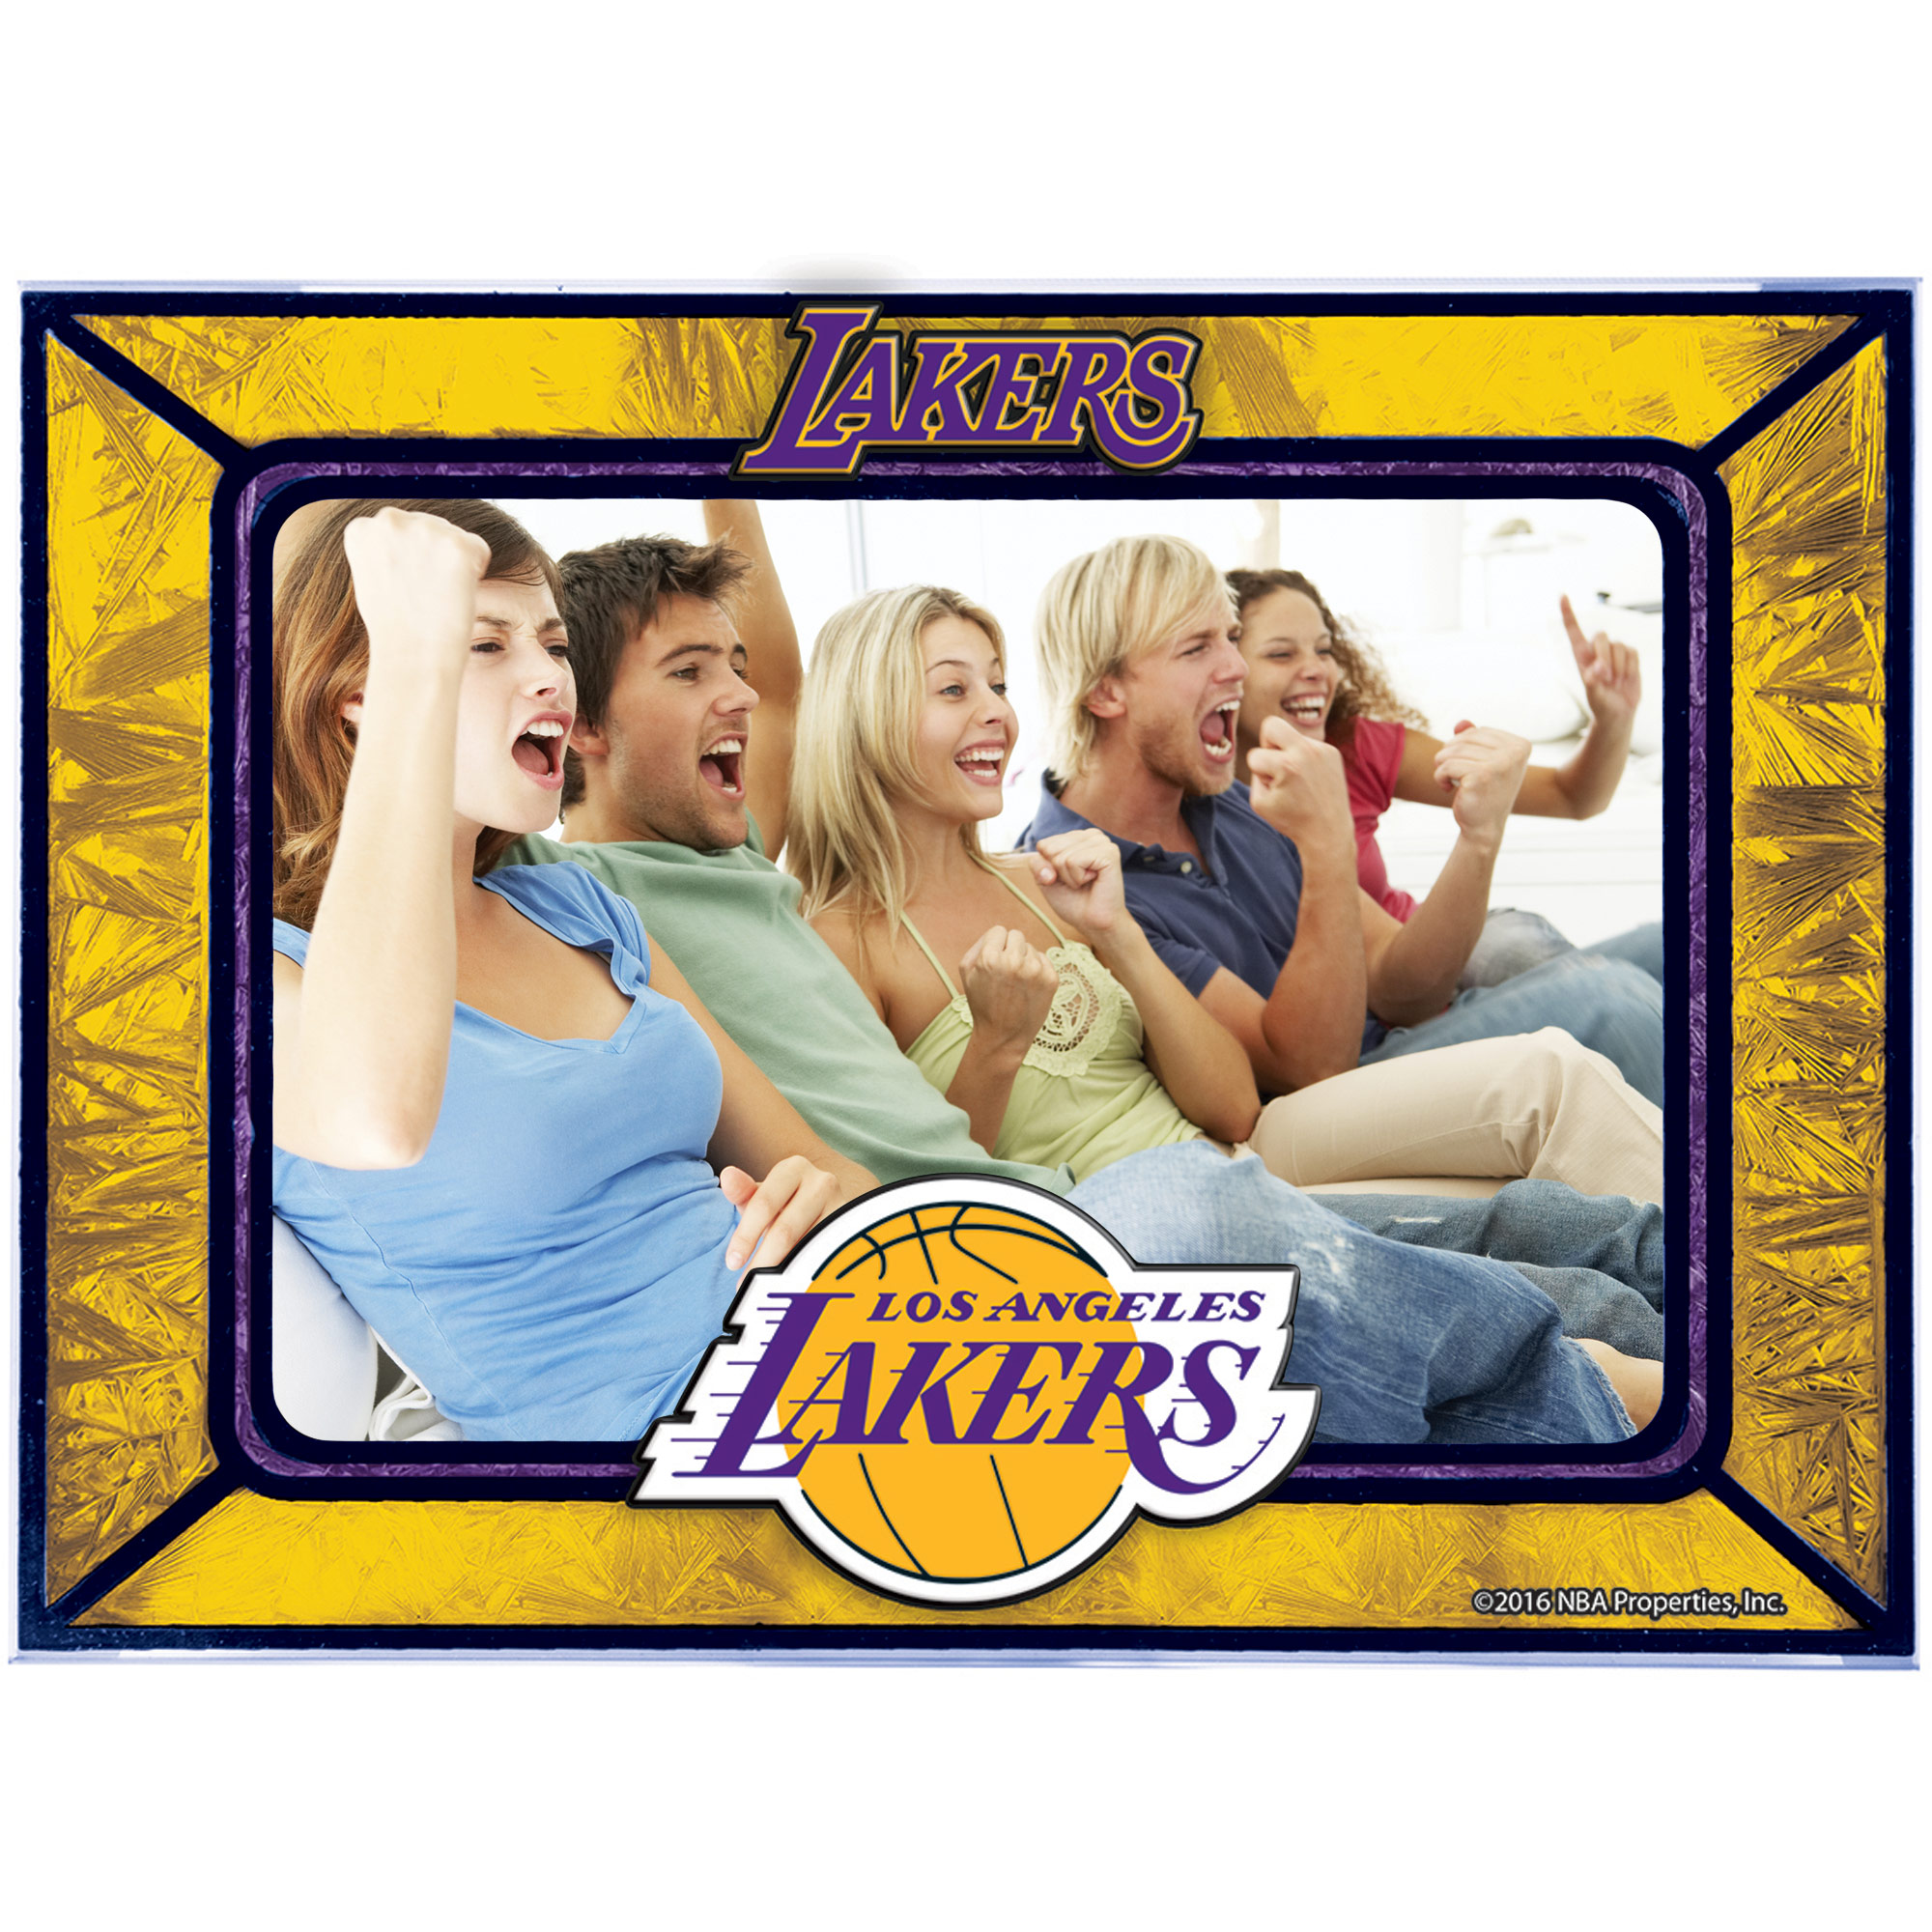 Los Angeles Lakers Horizontal Art Glass Frame - No Size